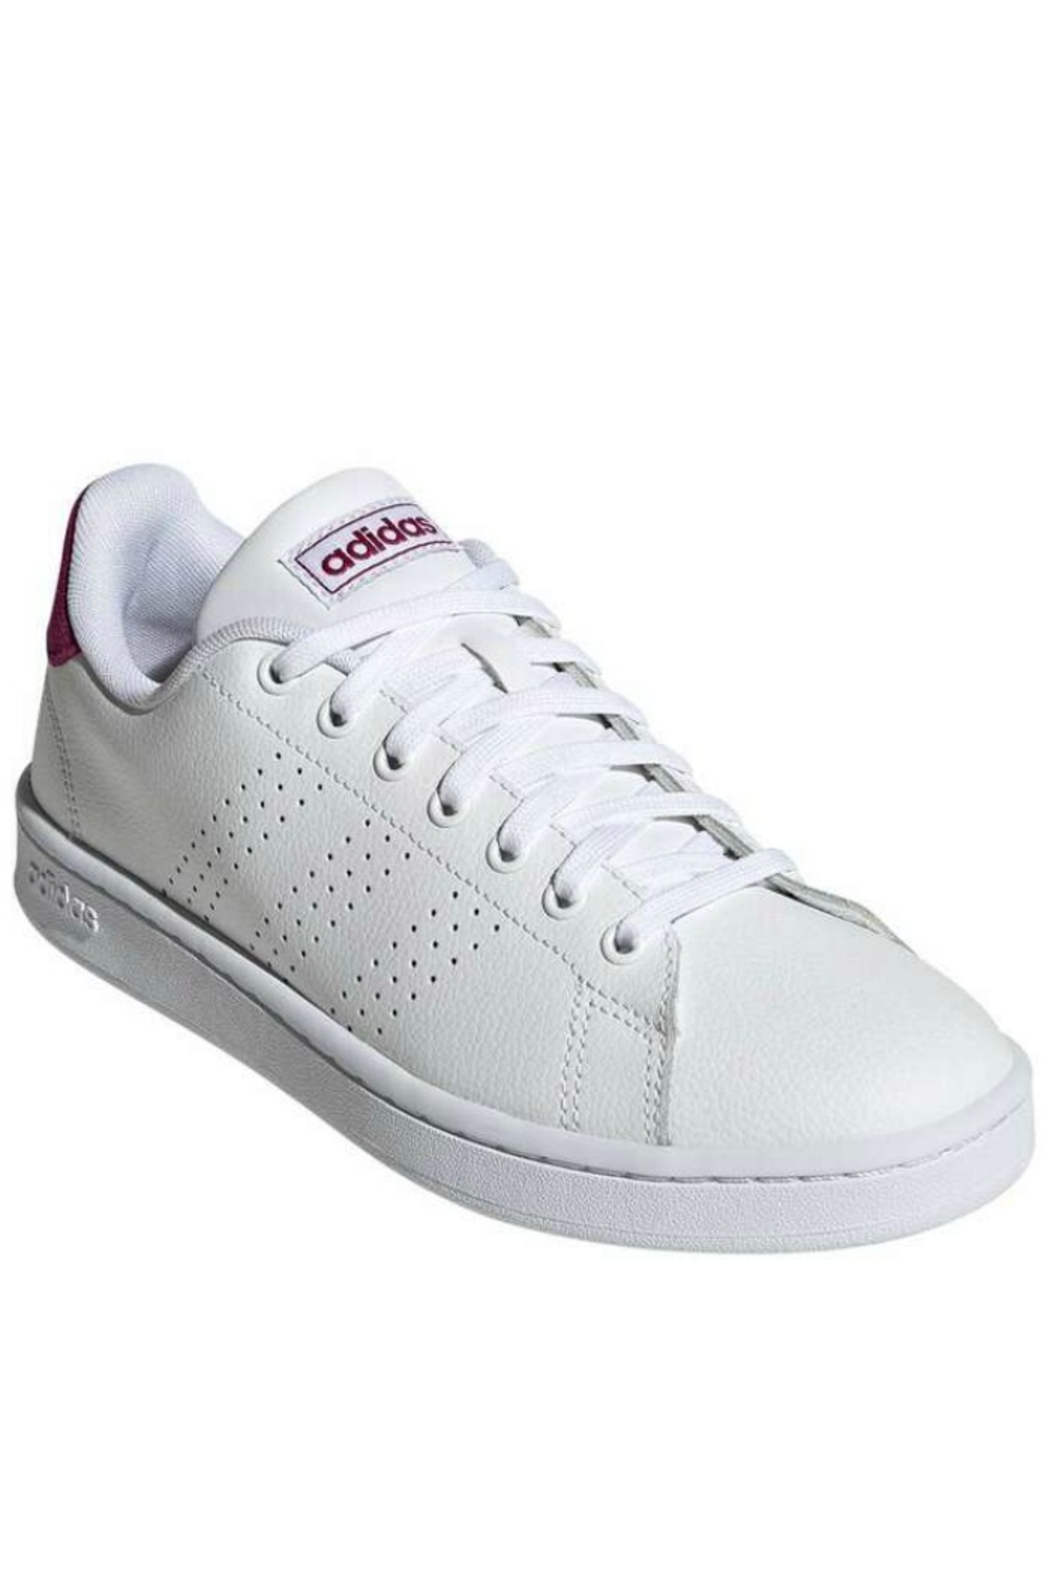 adidas Women's Adidas Advantage in White/Powder Berry - Front Cropped Image